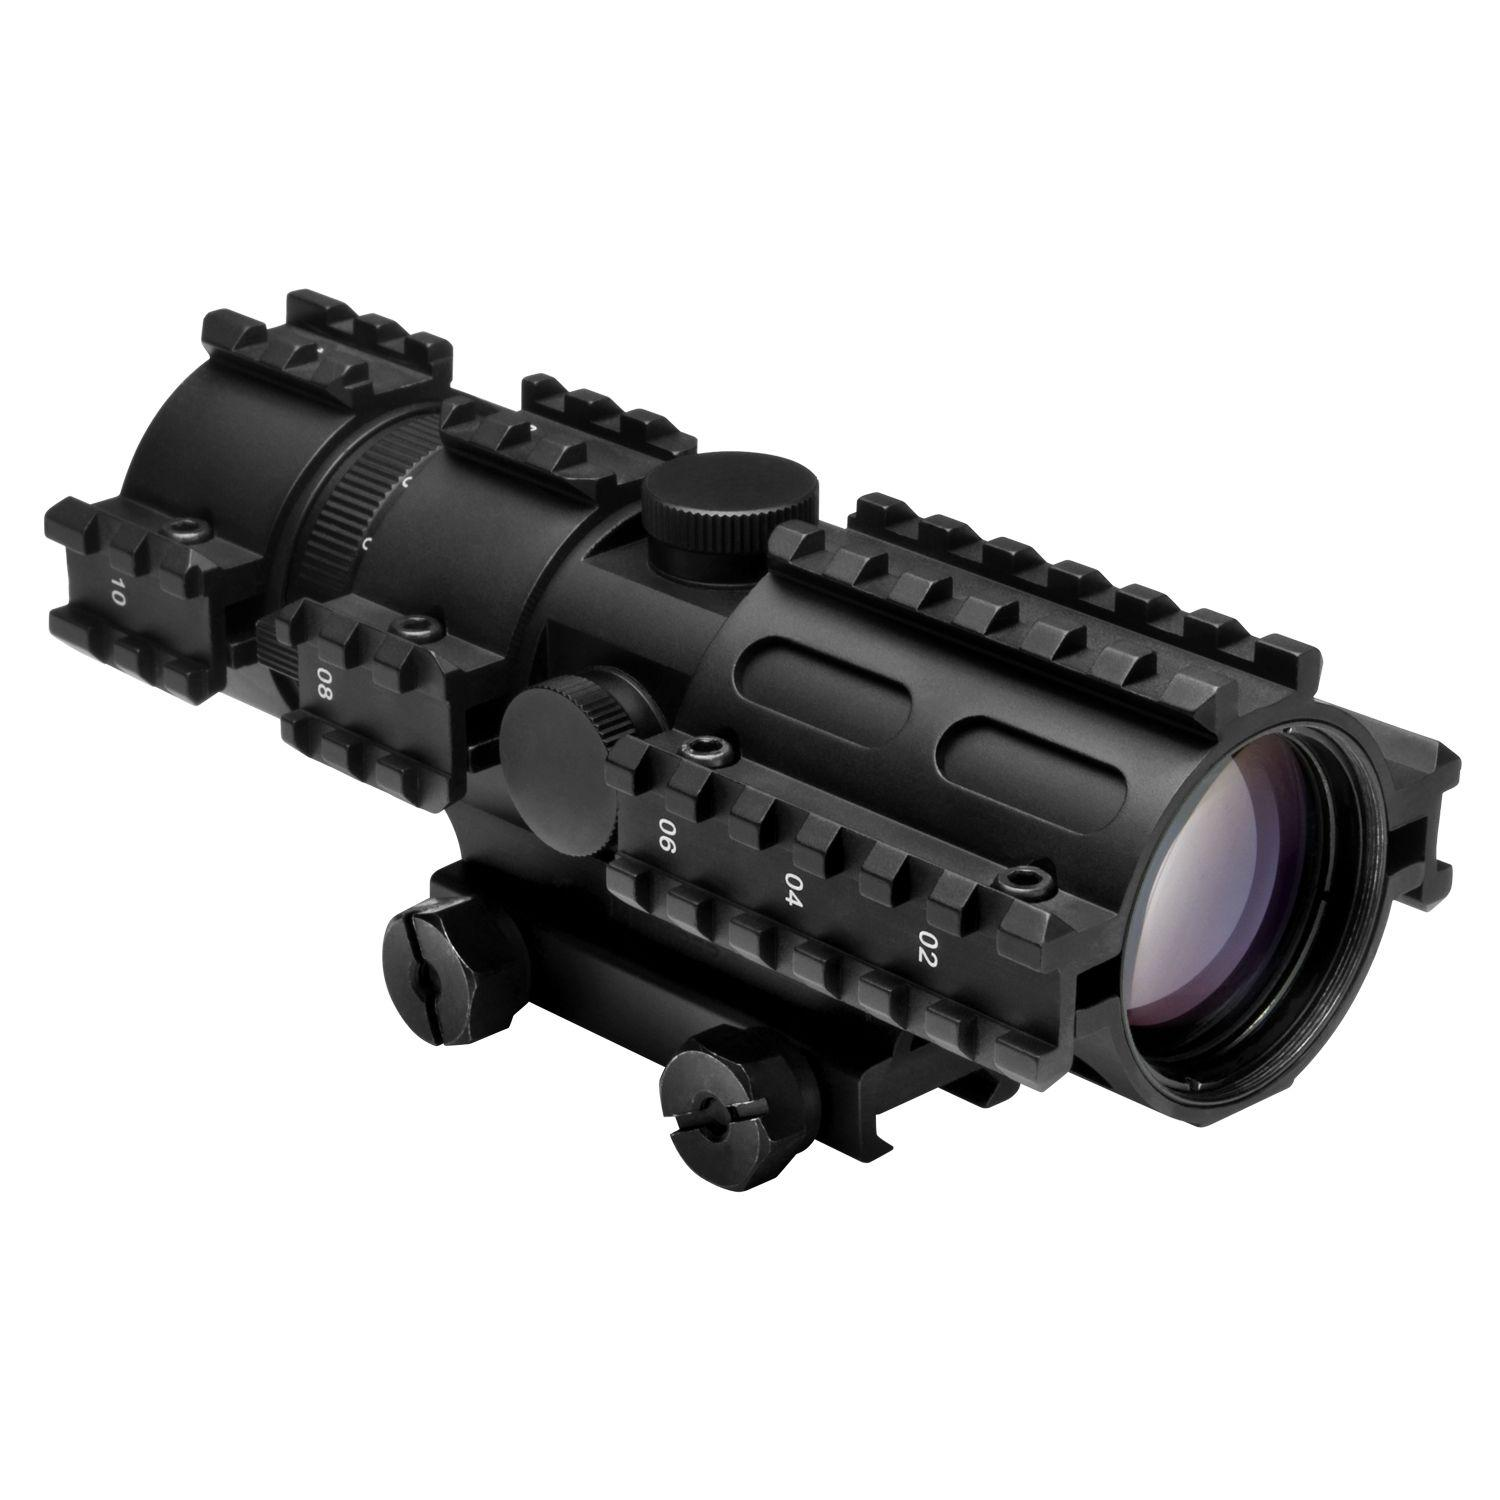 Ncstar Tri-Rail Series 3-9X42 Compact Rifle Scope